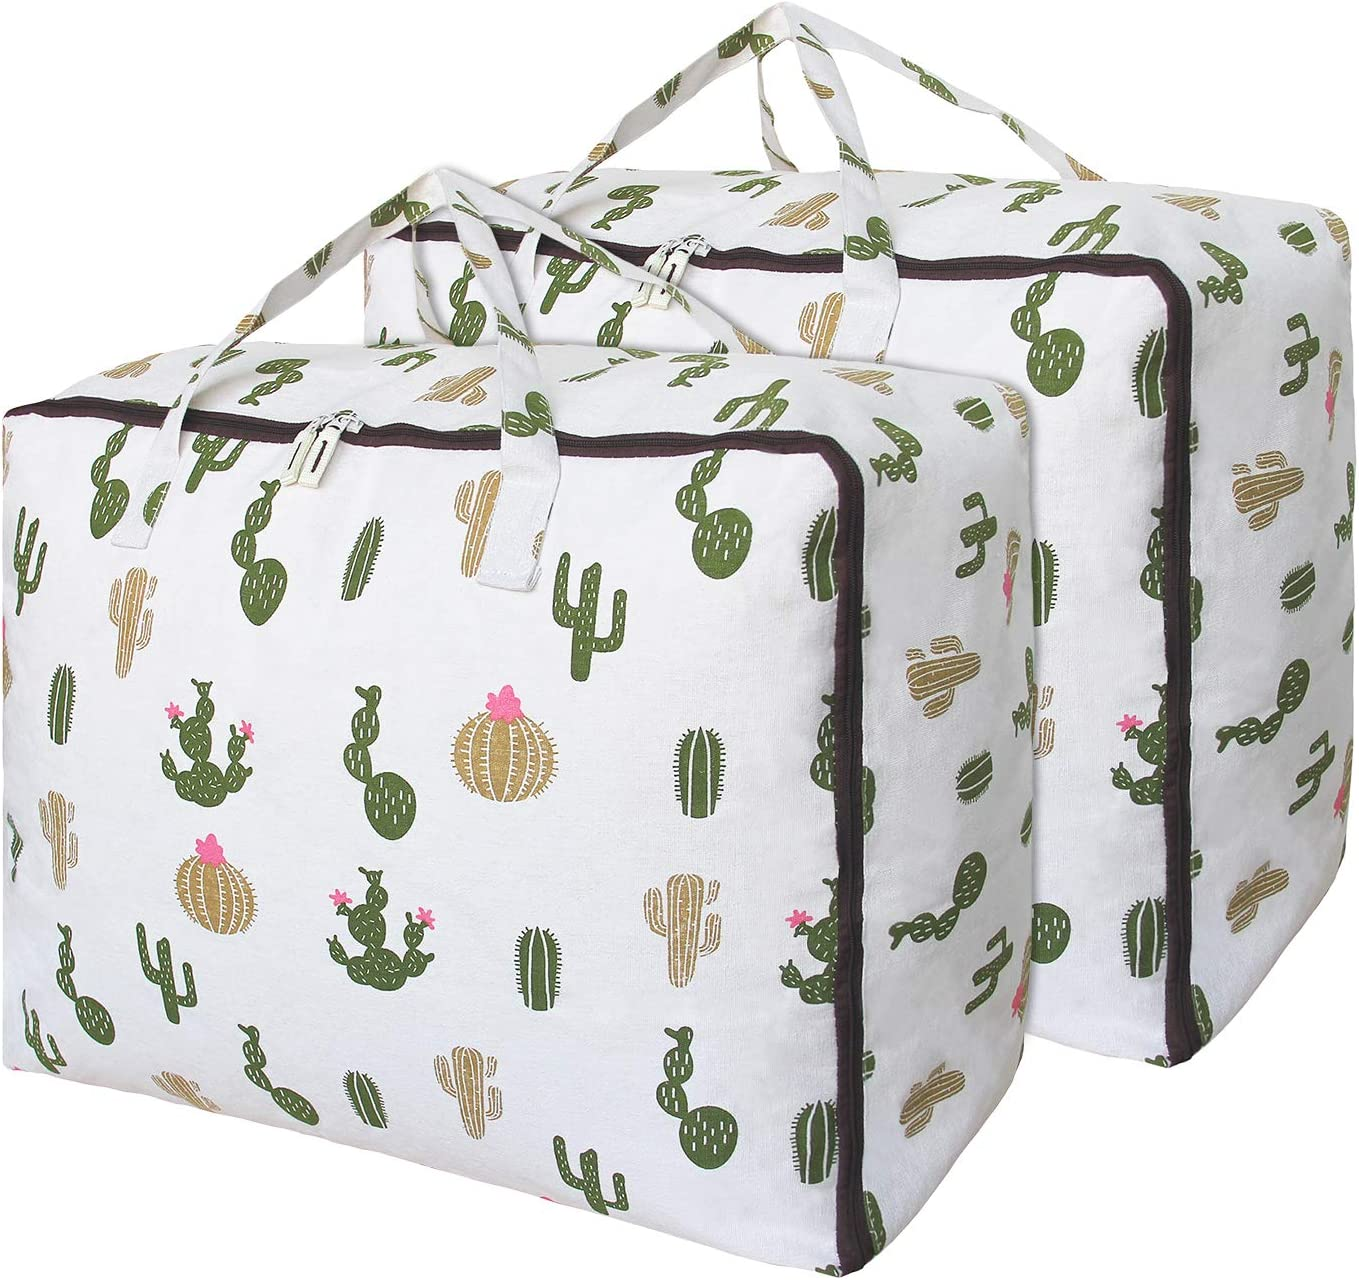 OUPAI Large Storage Bag with Zipper Bed Handles Chicago Mall 85L and safety S Under